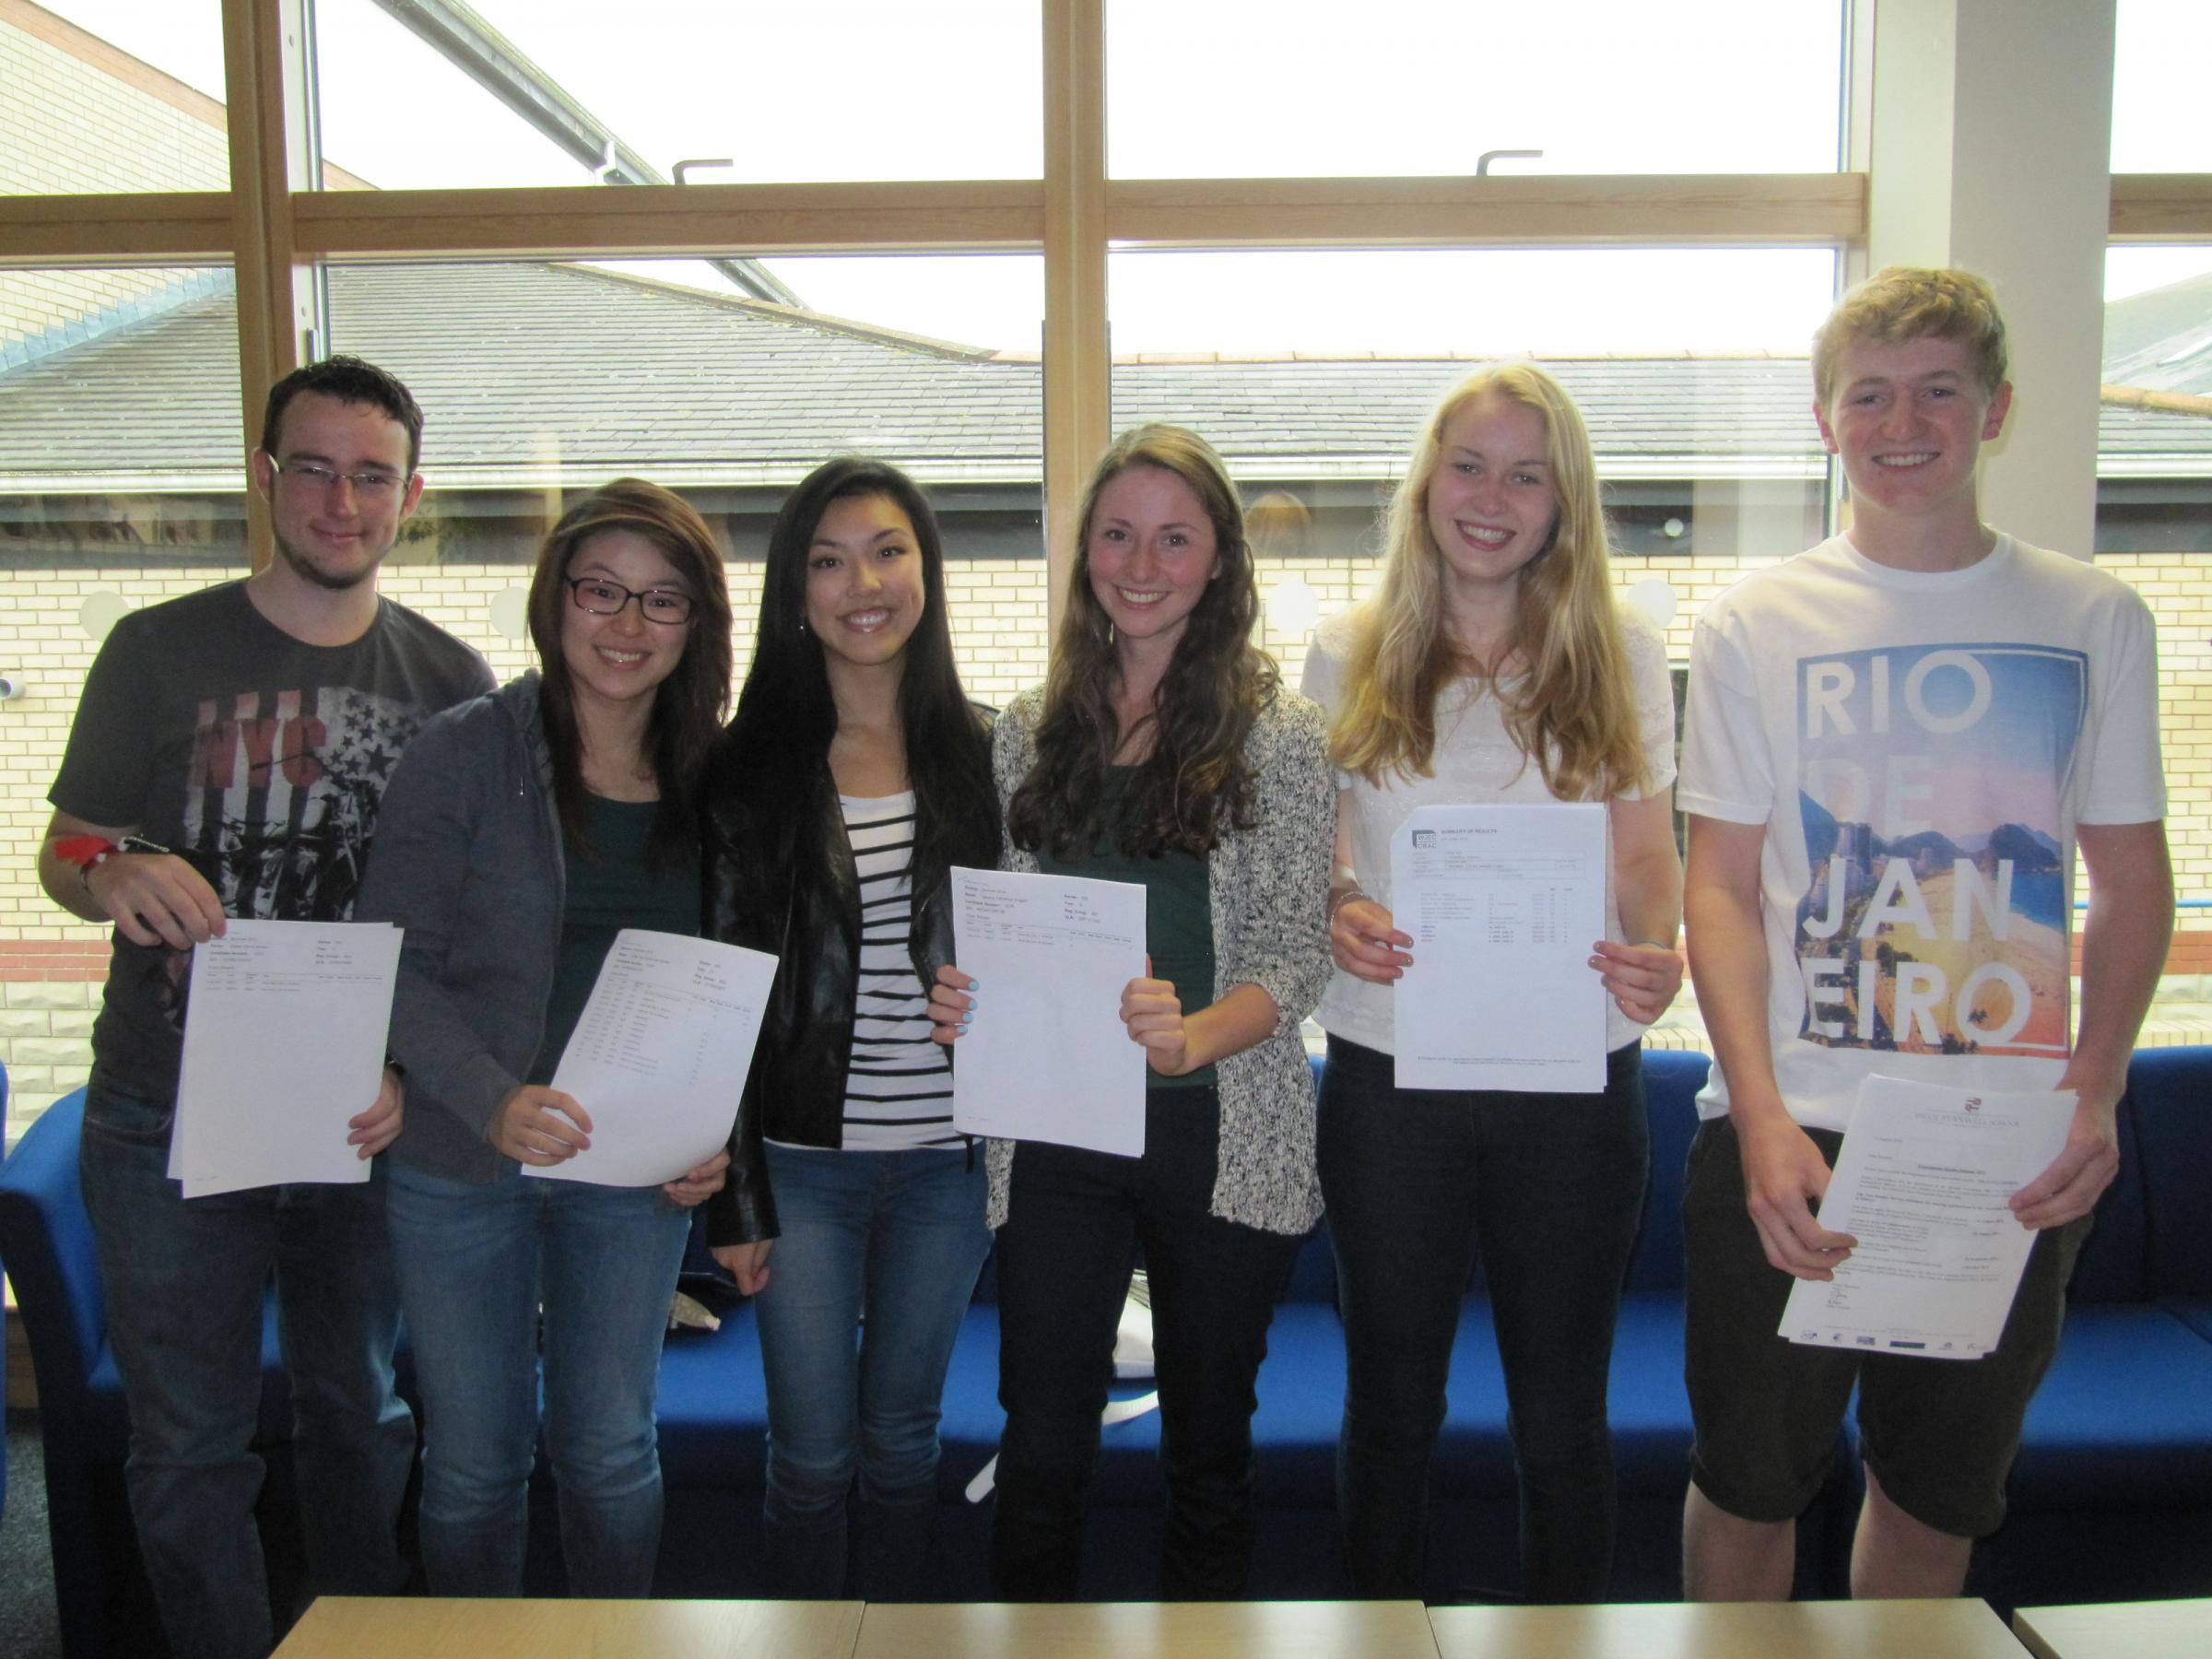 Stanwell School pupils celebrate A-level results day